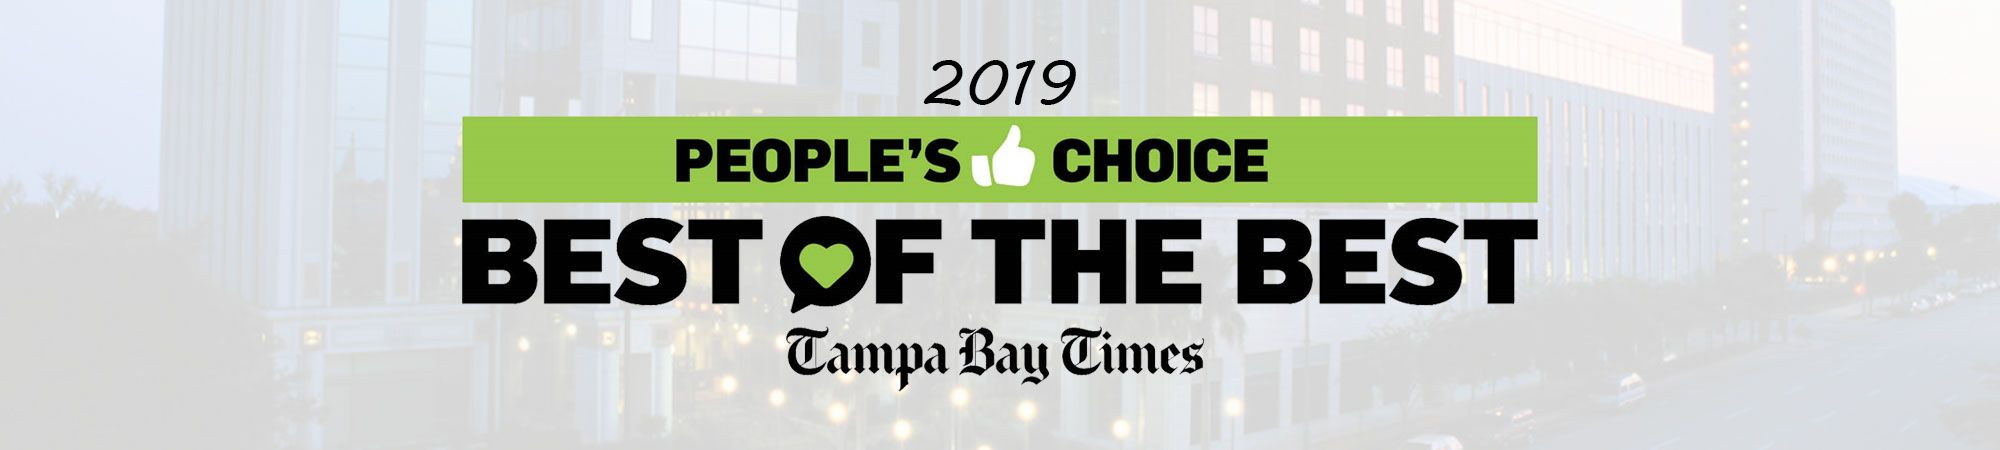 tampa-bay-times-best-of-the-best-2019